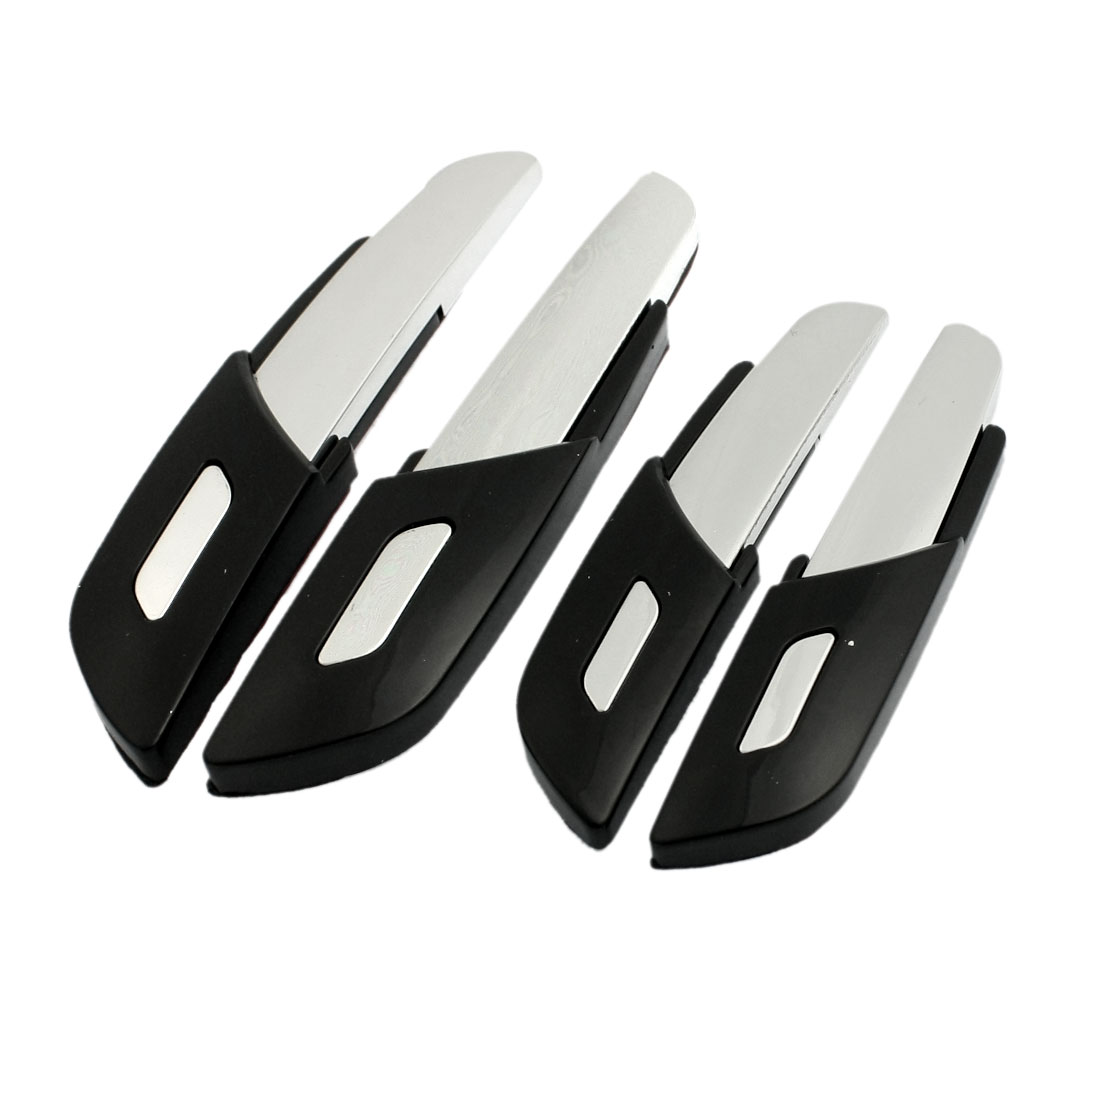 4 Pcs Black Silver Tone Decorative Car Door Bumper Guard Sticker